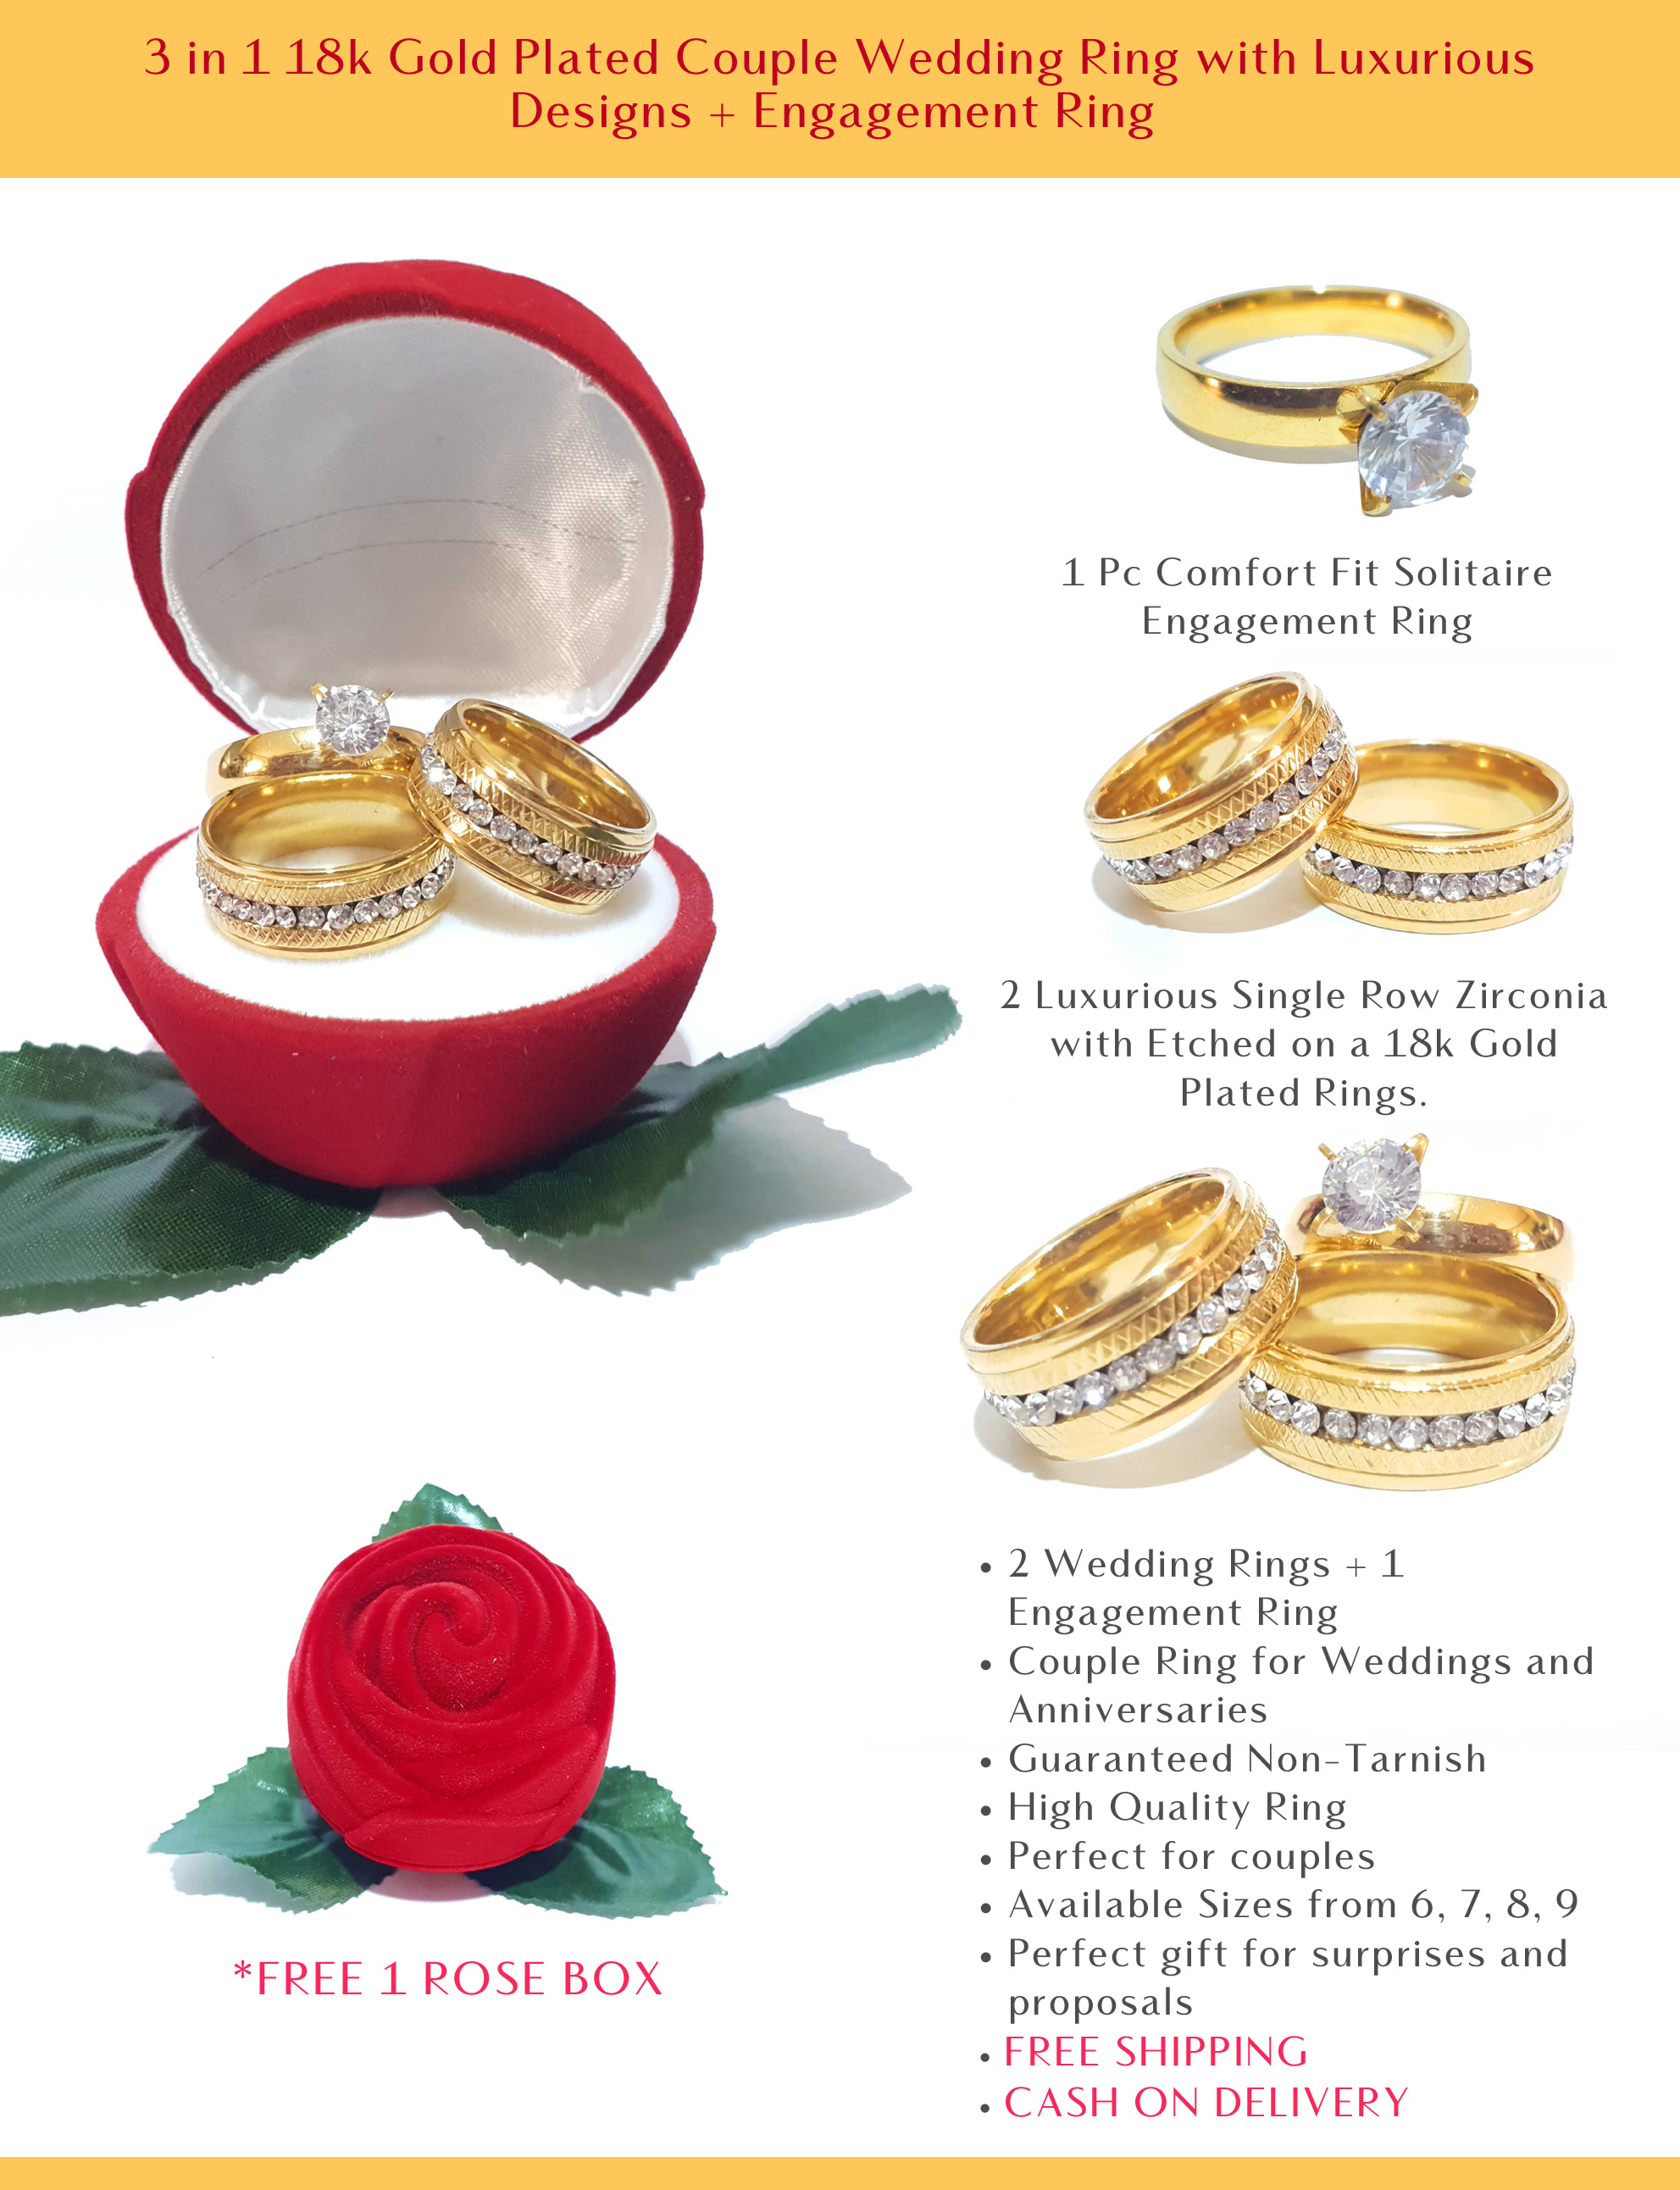 3 In 1 18k Gold Plated Couple Wedding Ring With Luxurious Designs